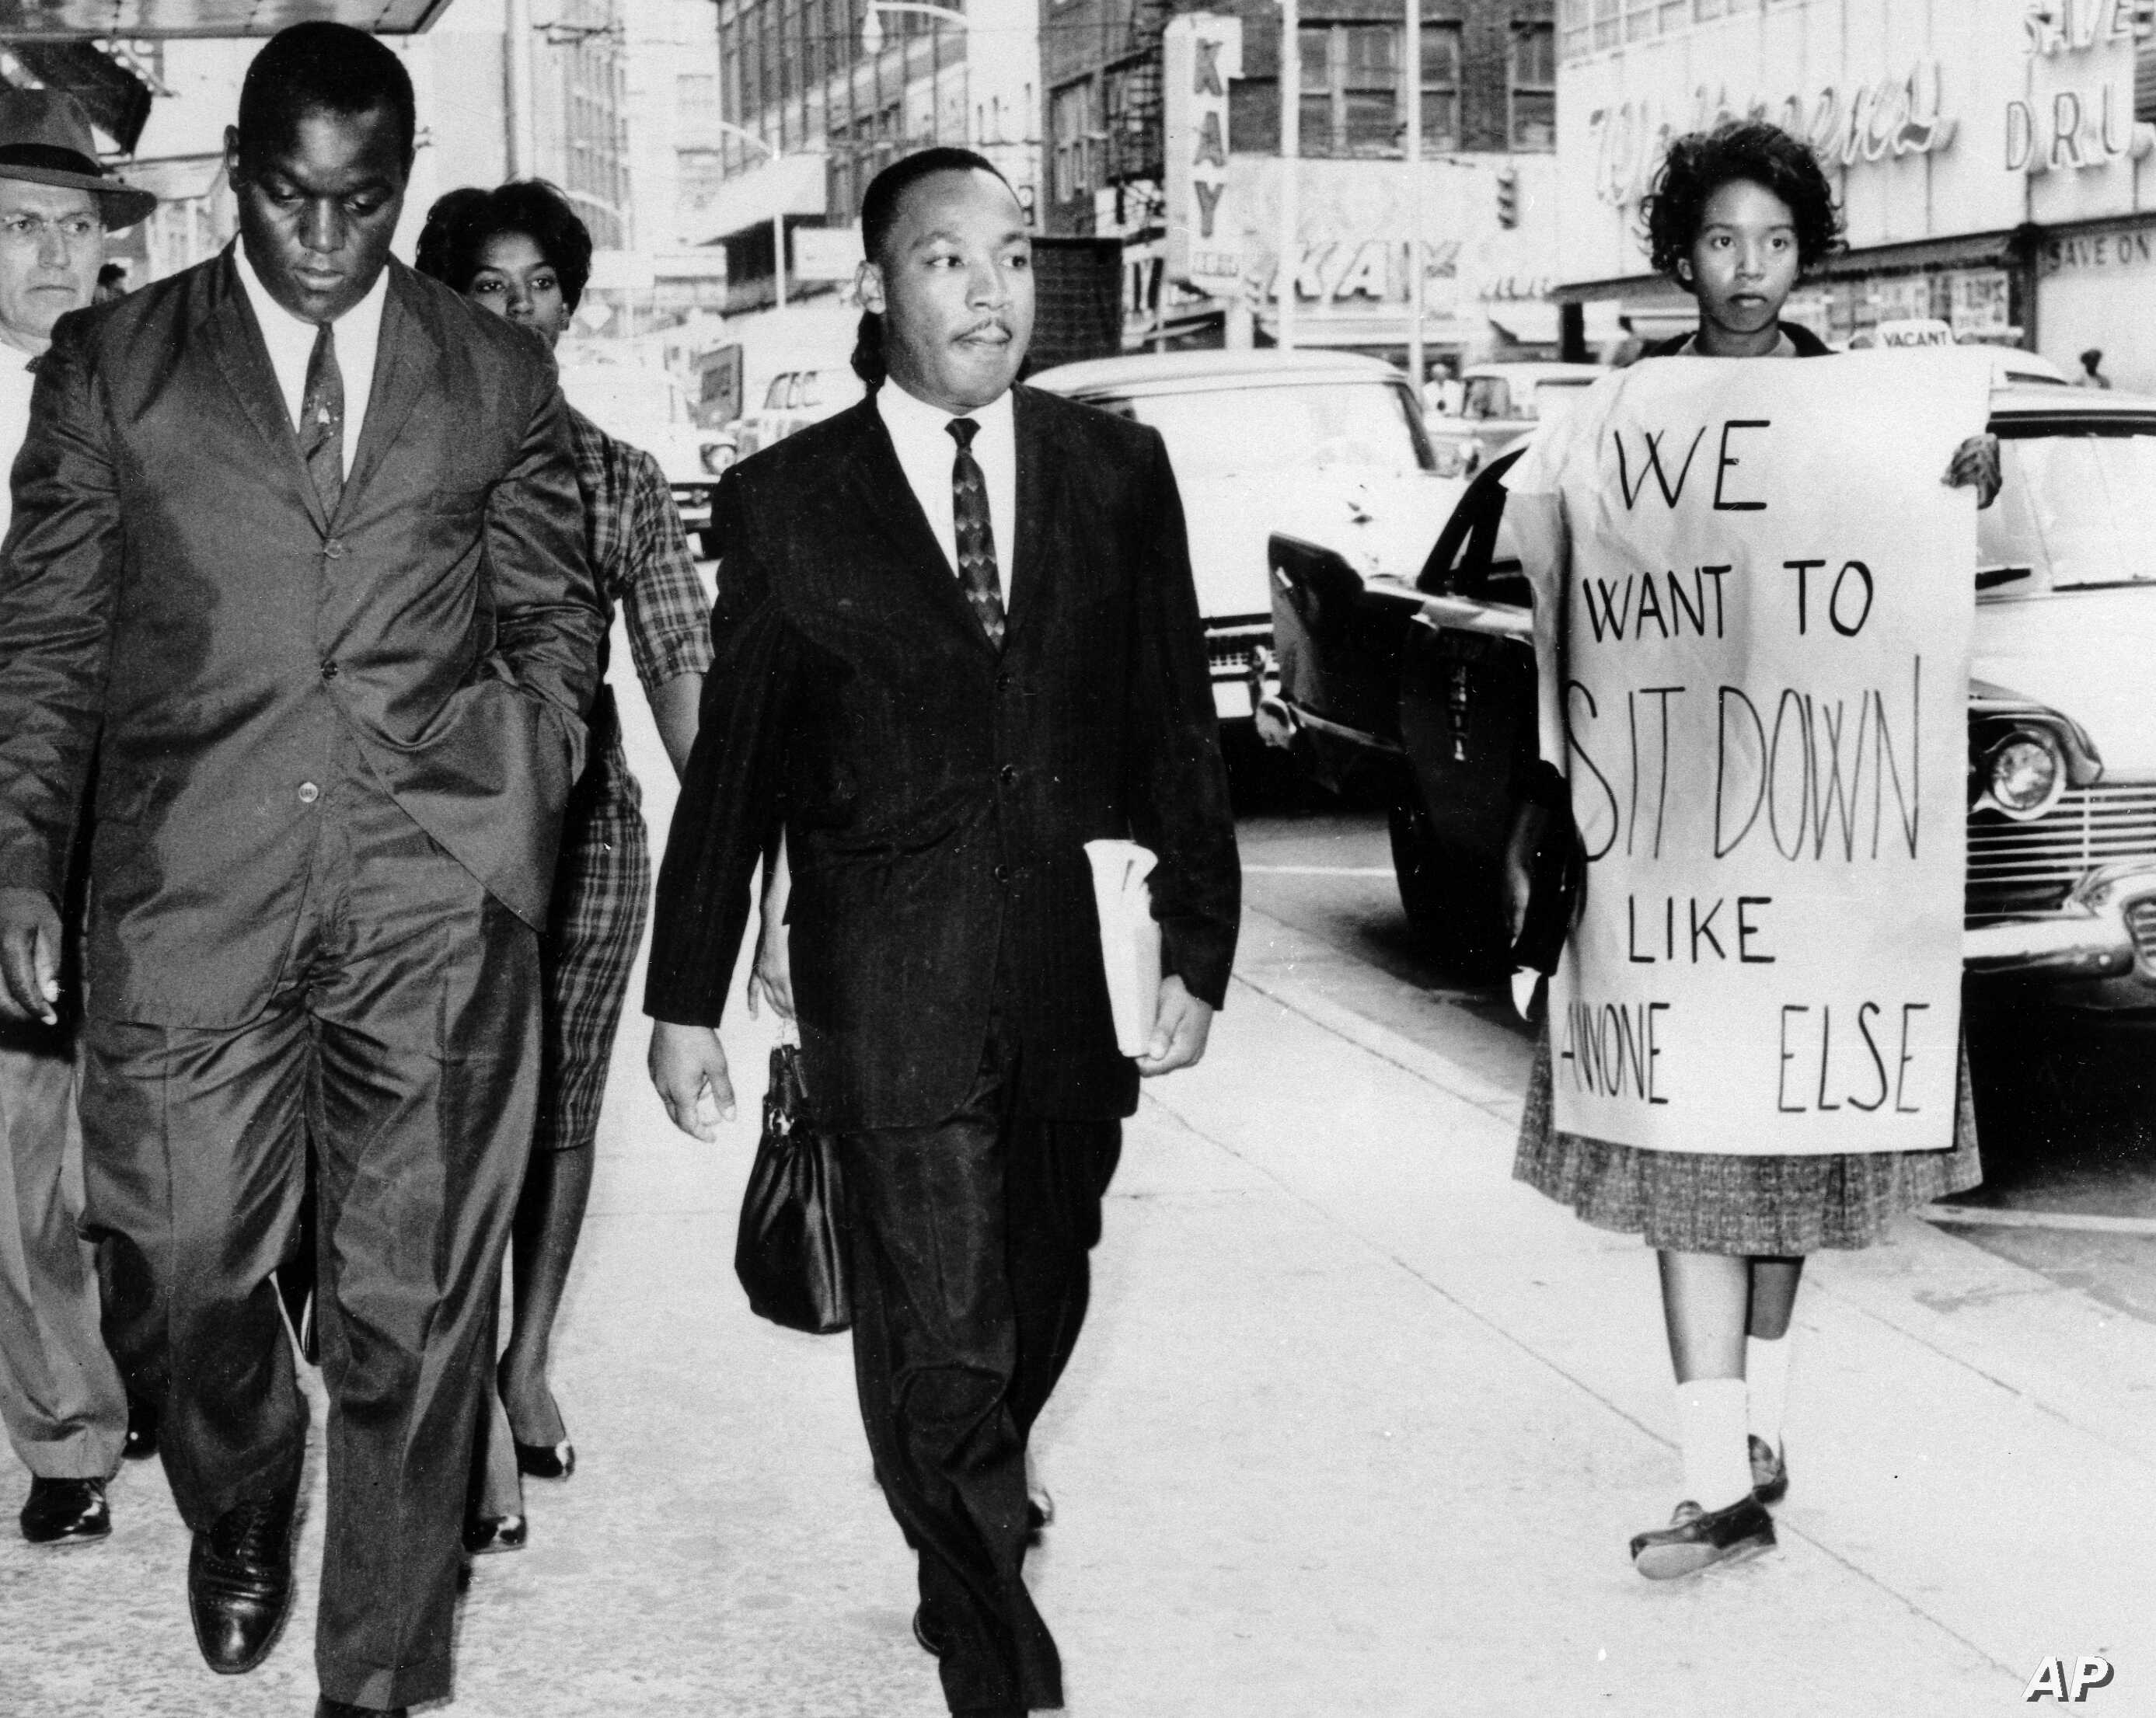 Dr. Martin Luther King Jr. under arrest by Atlanta Police Captain R.E. Little, left rear, passes through a picket line in front of a downtown department store on Oct. 9, 1960.